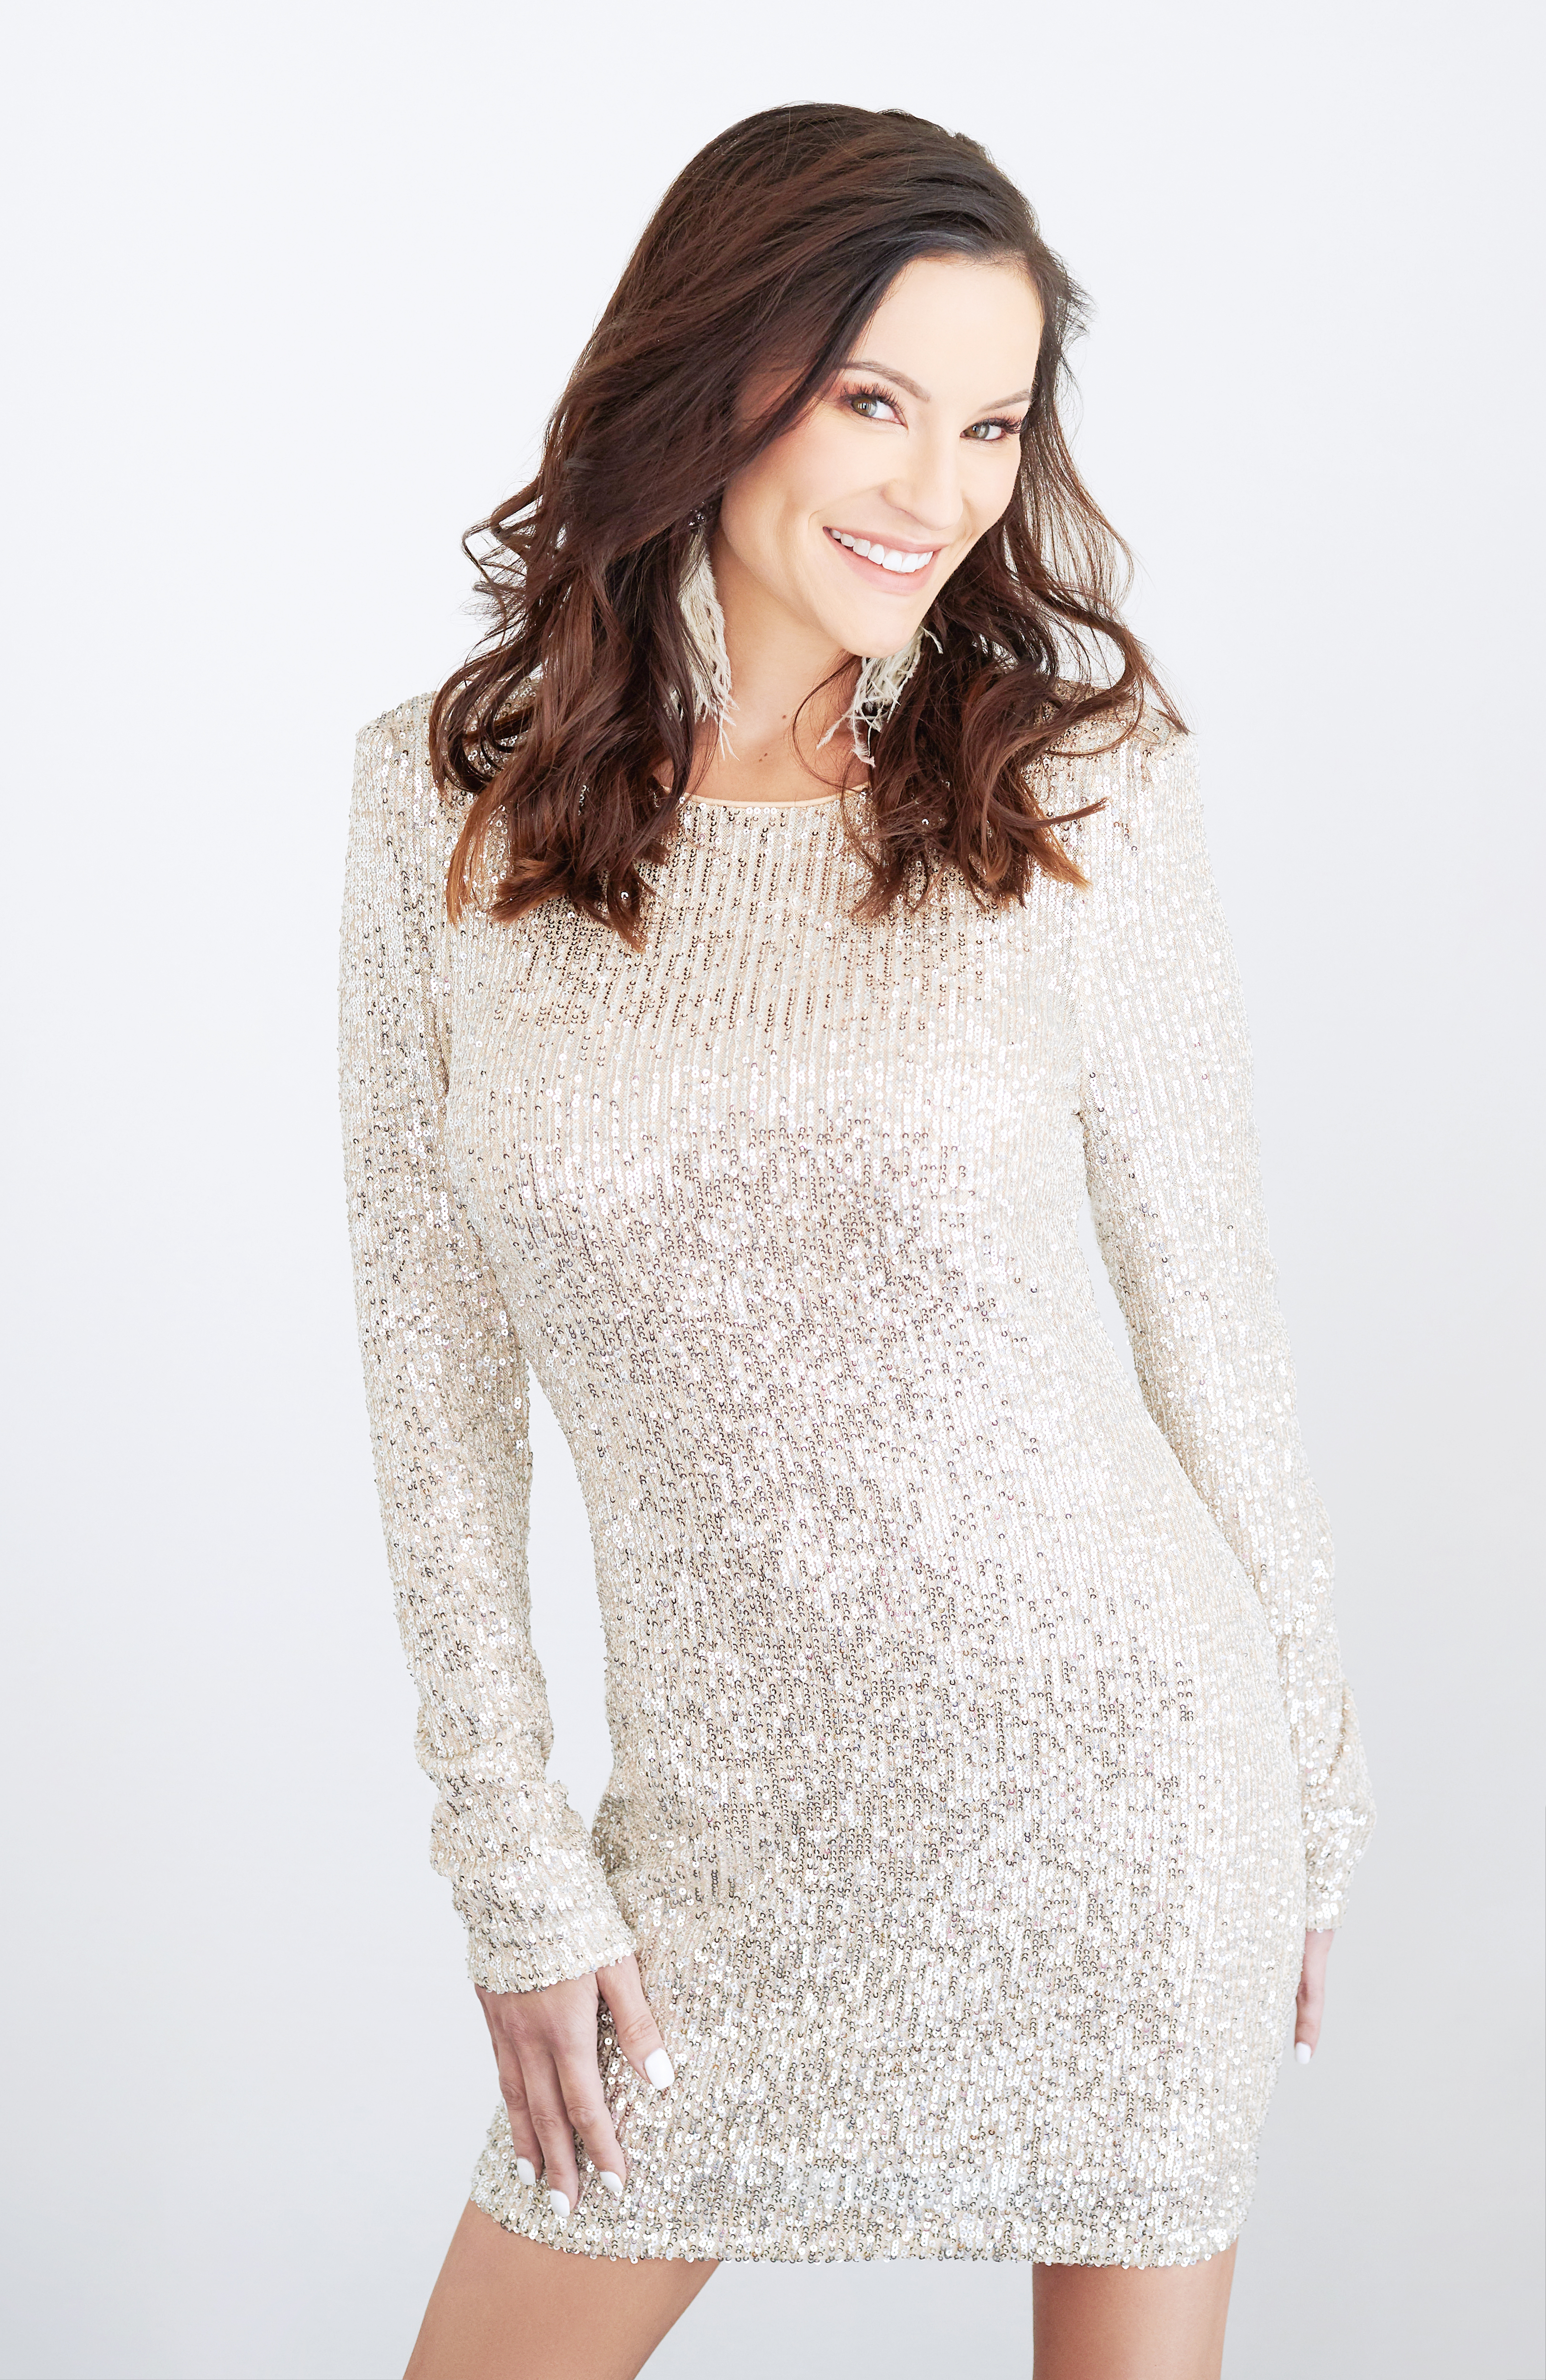 Beautiful smiling brunette woman with sparkly white/silver dress